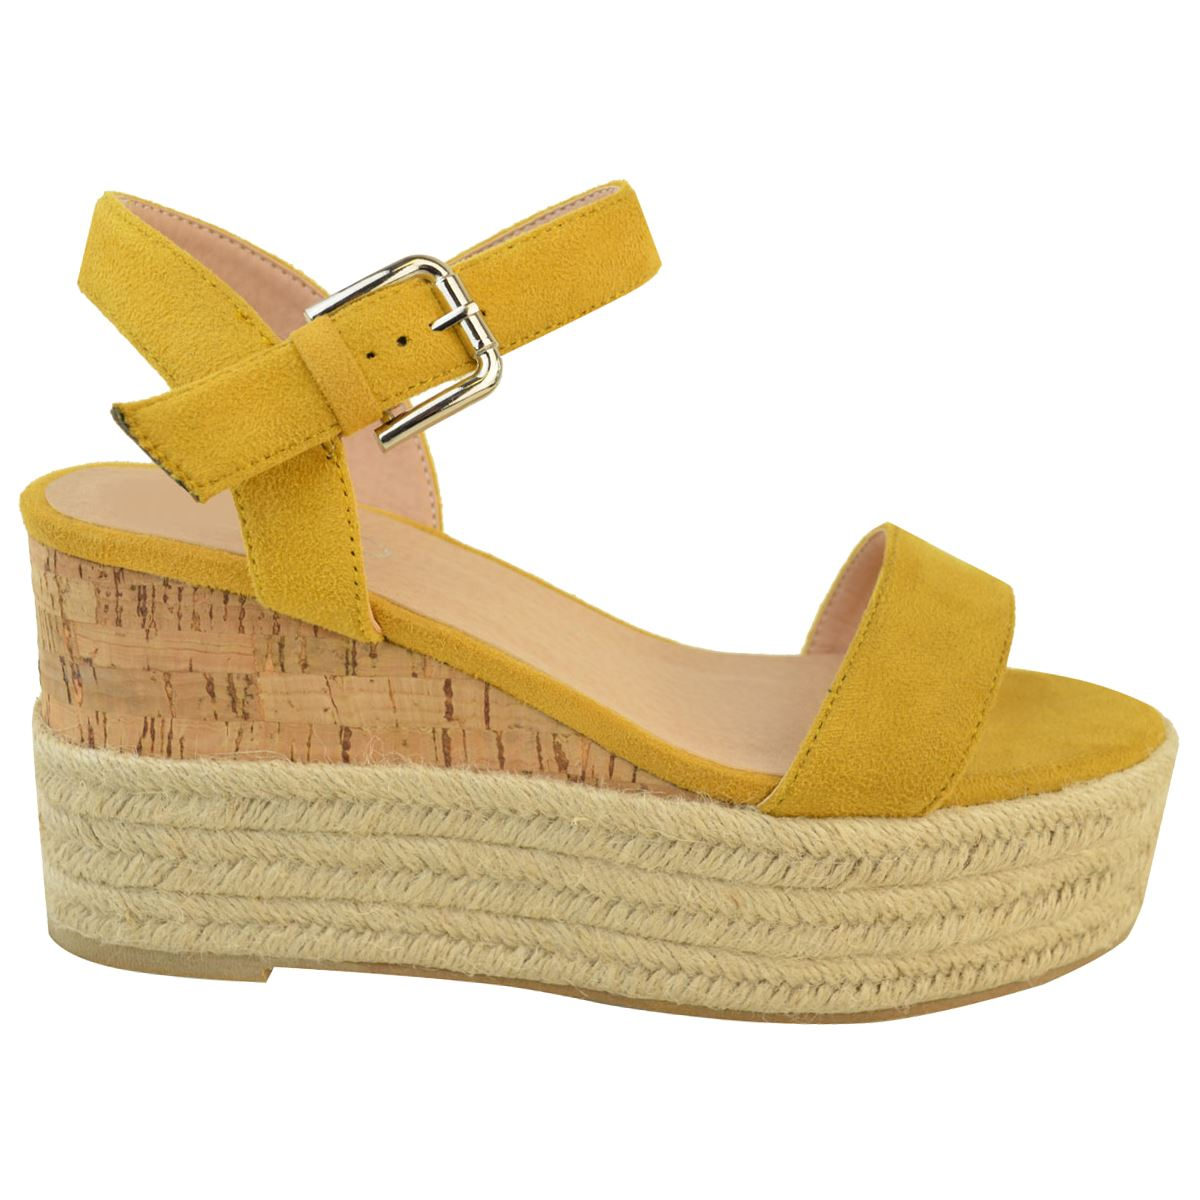 Womens-Ladies-Summer-Platform-Ankle-Strappy-Wedges-Open-Toe-Sandals-Shoes-Size thumbnail 6